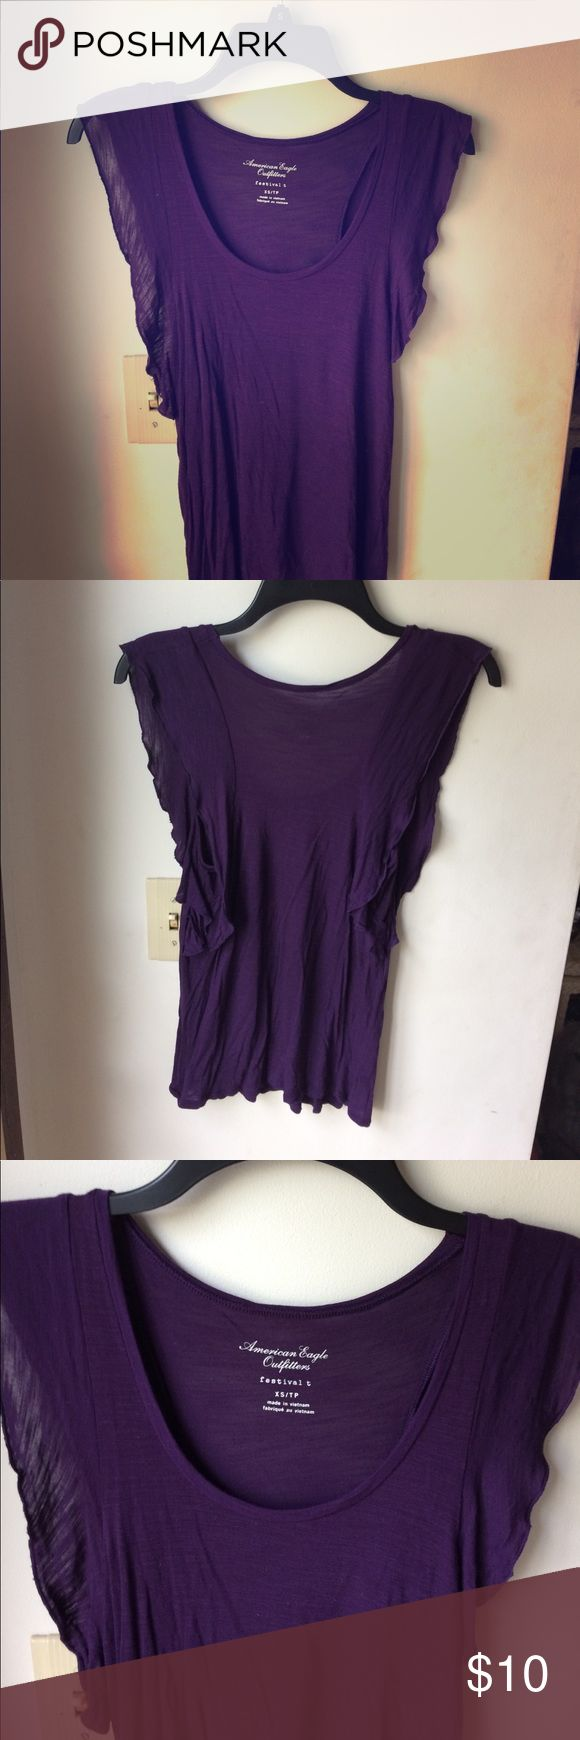 American eagle outfitters flutter top Xs plum colored top by American eagle outfitters. Has flutter sleeves that spice up this top. It is a slightly sheer material so possible bandeau underneath or a nude bra. American Eagle Outfitters Tops Tank Tops